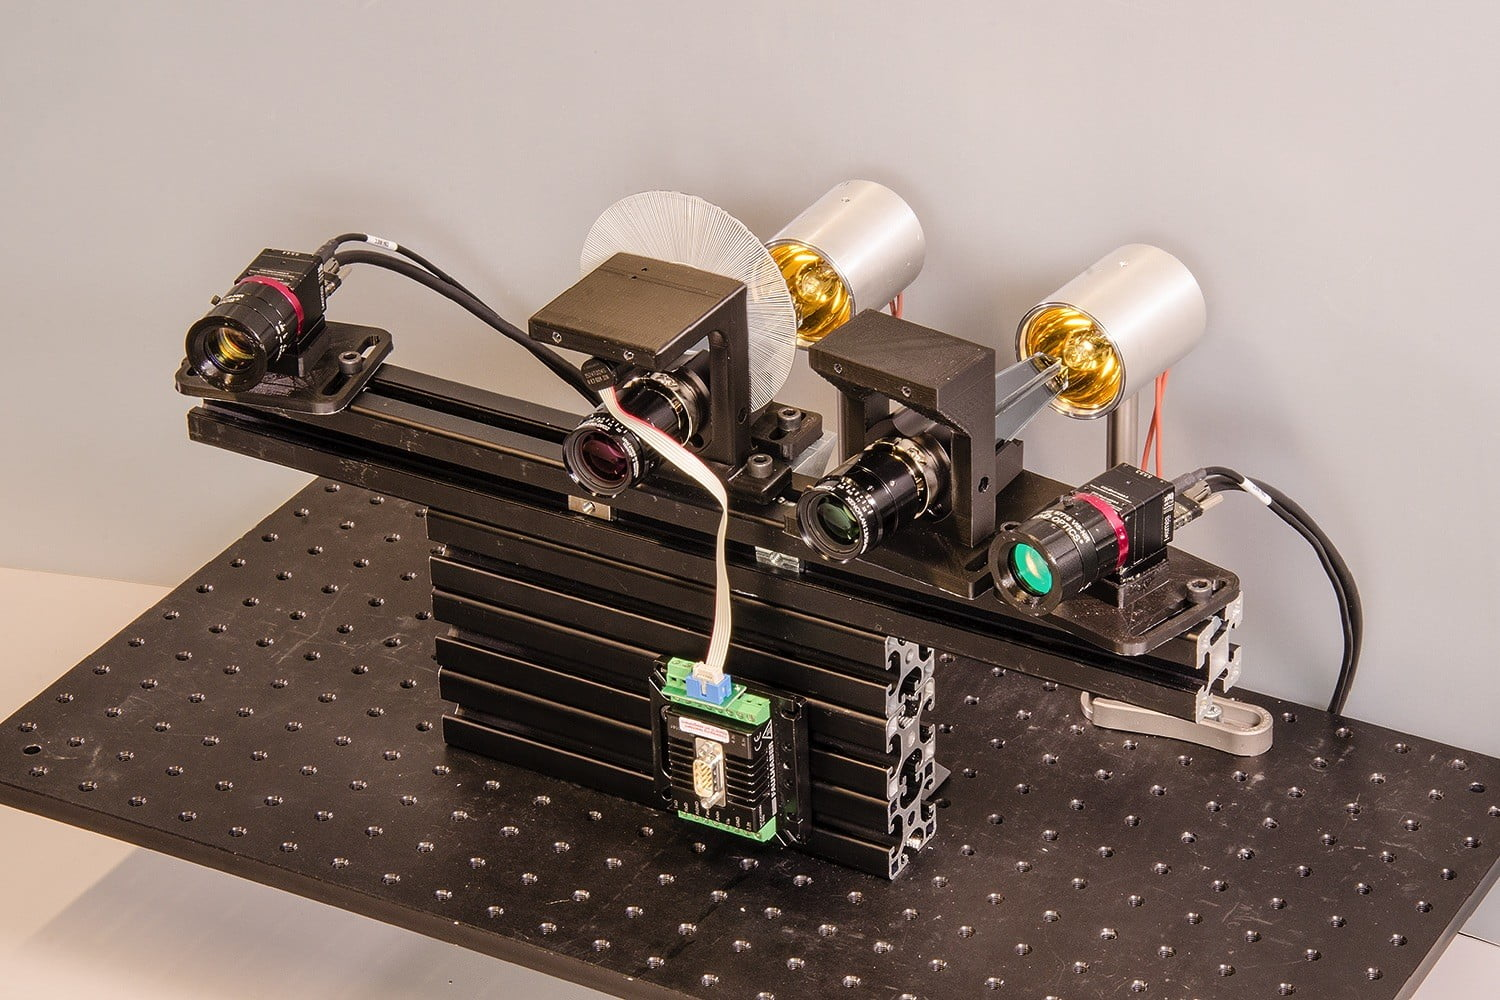 Engineers build new camera capable of taking pictures in five dimensions